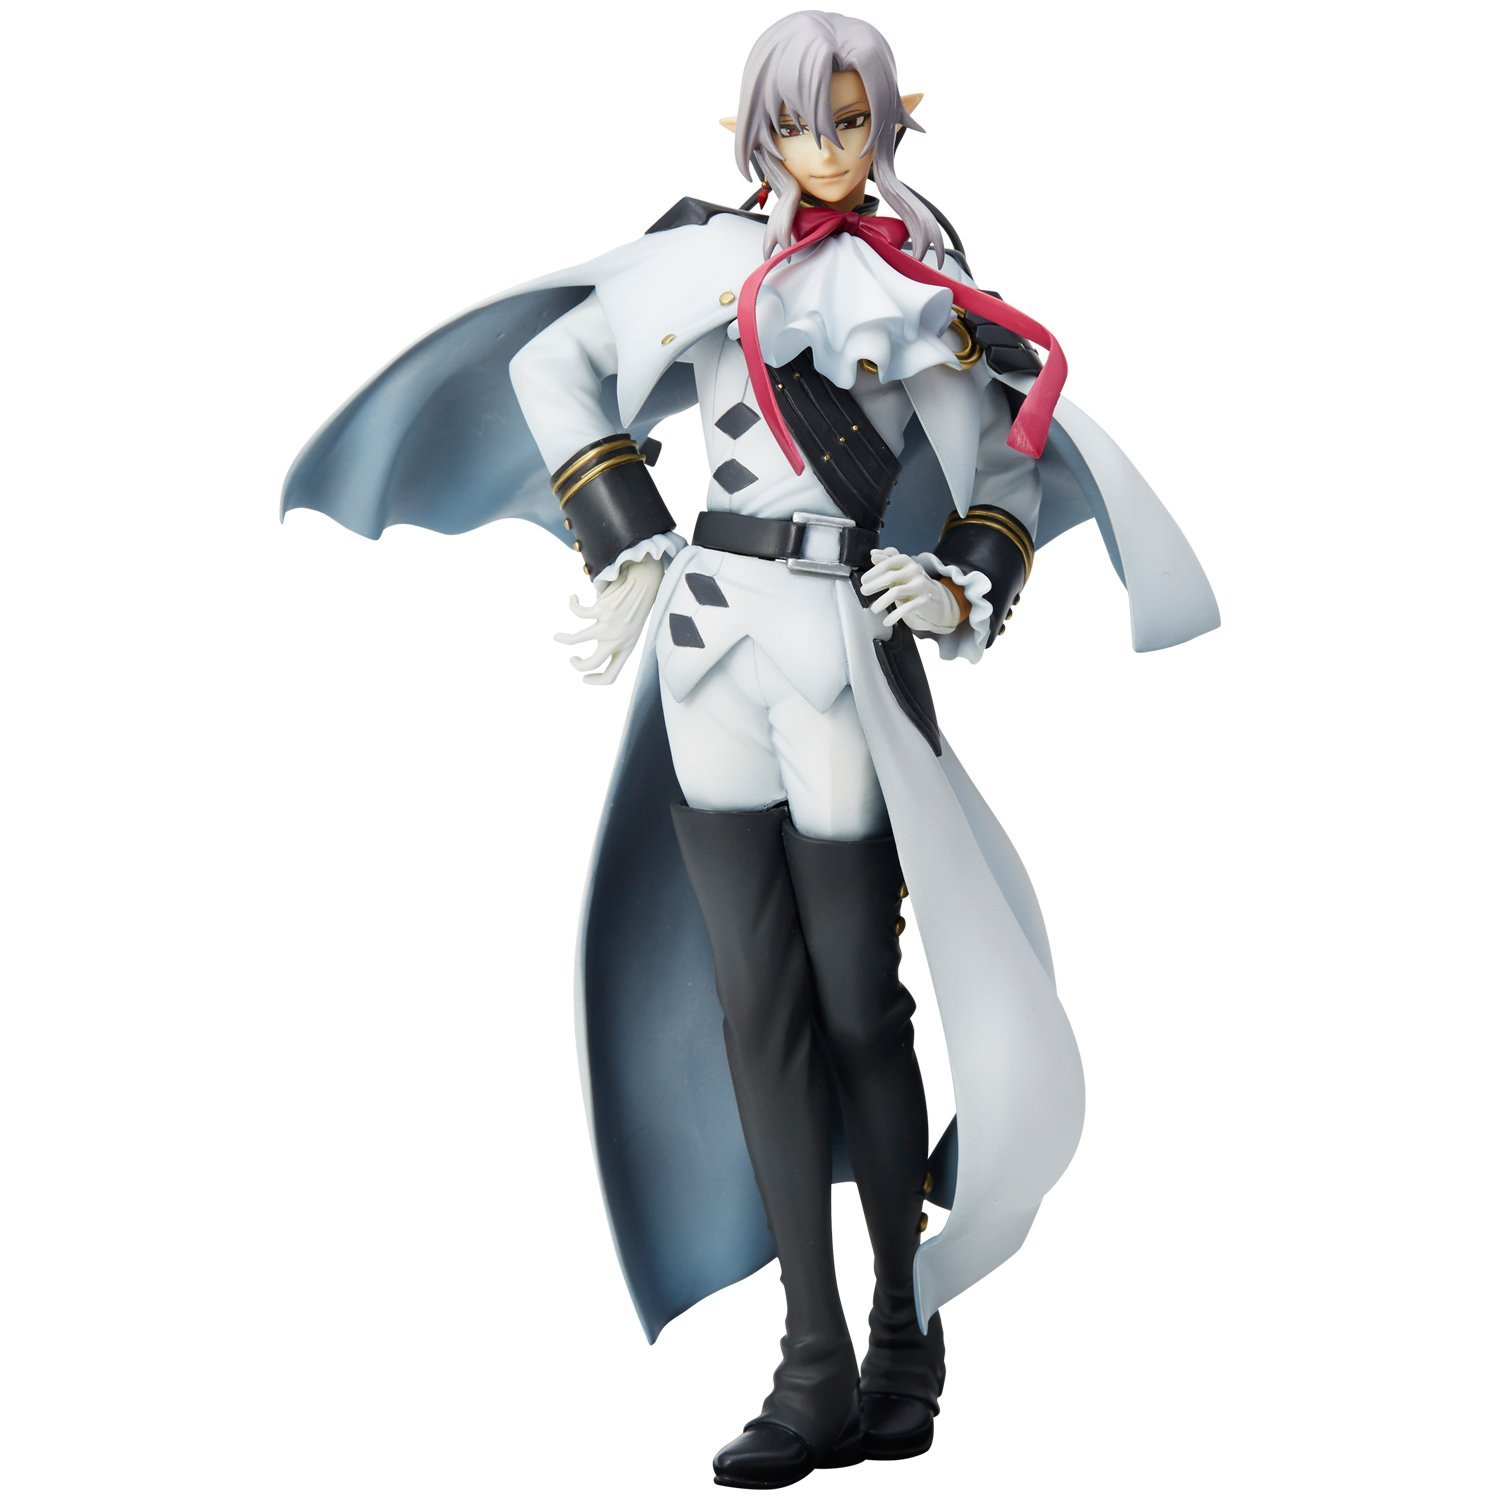 Seraph of the End Union Creative mensHdge Technical Statue No.24 Ferid Bathory Figure Rinkya